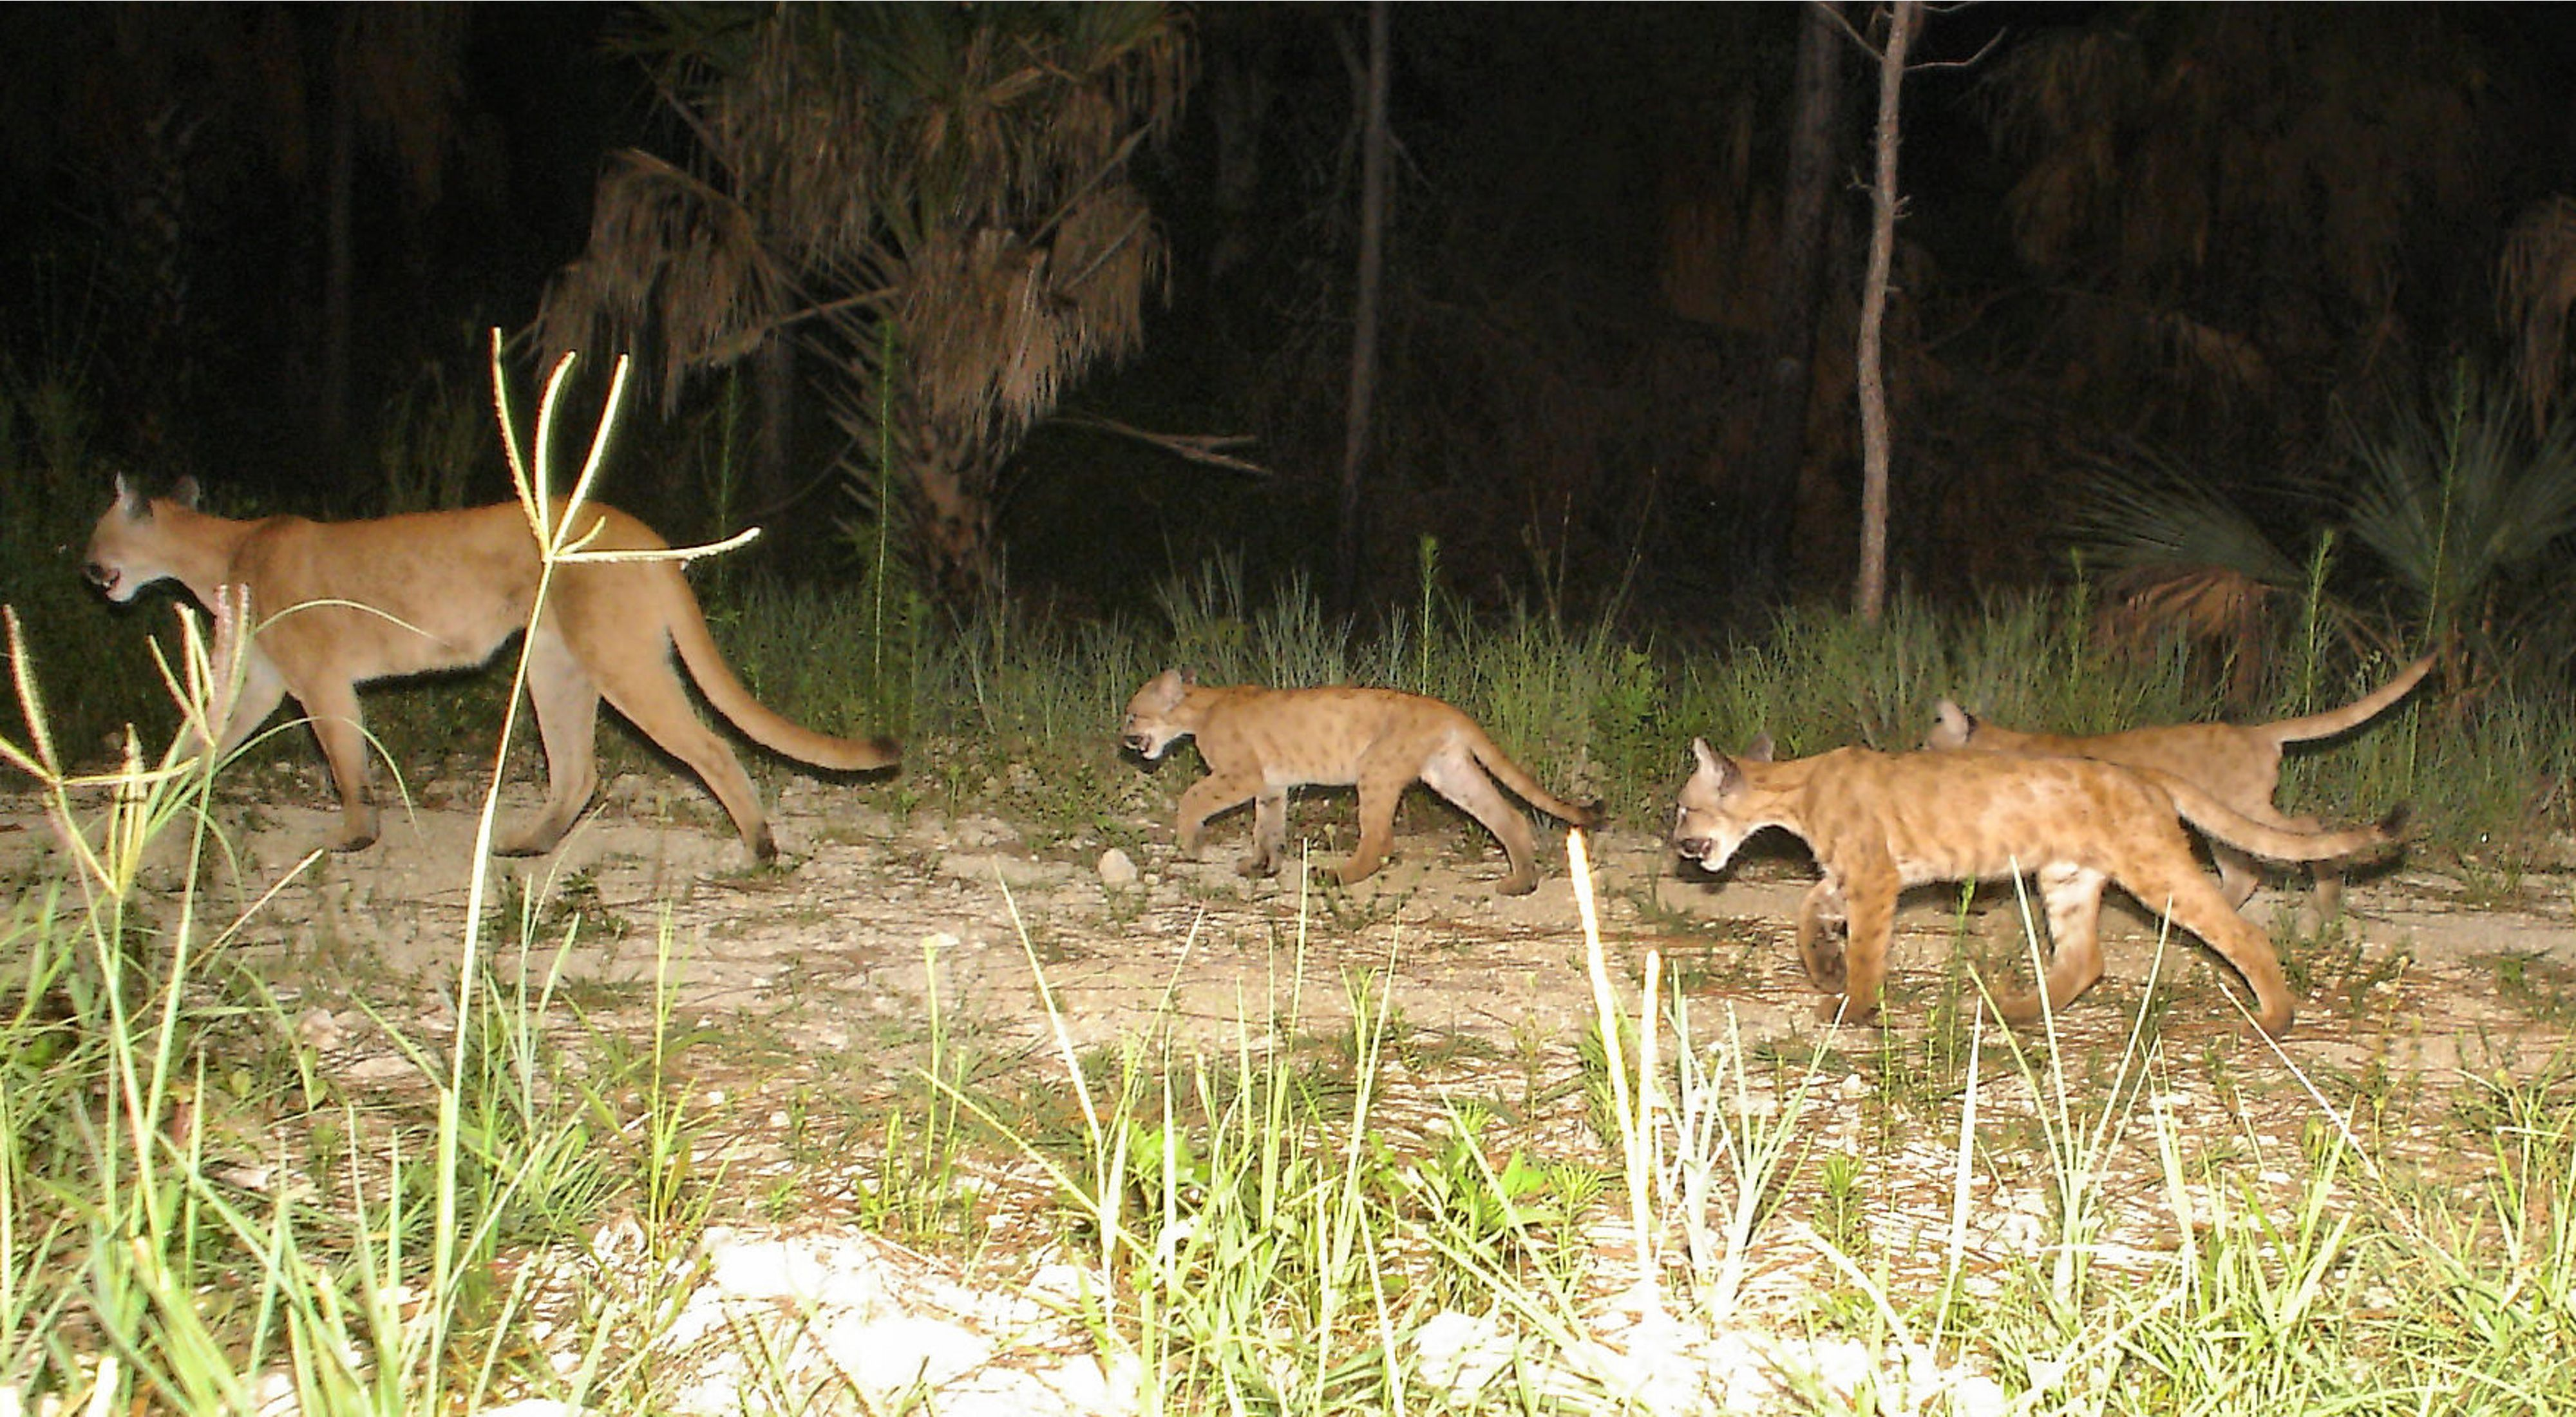 Panther mother with three kittens roaming in the wild in Florida.